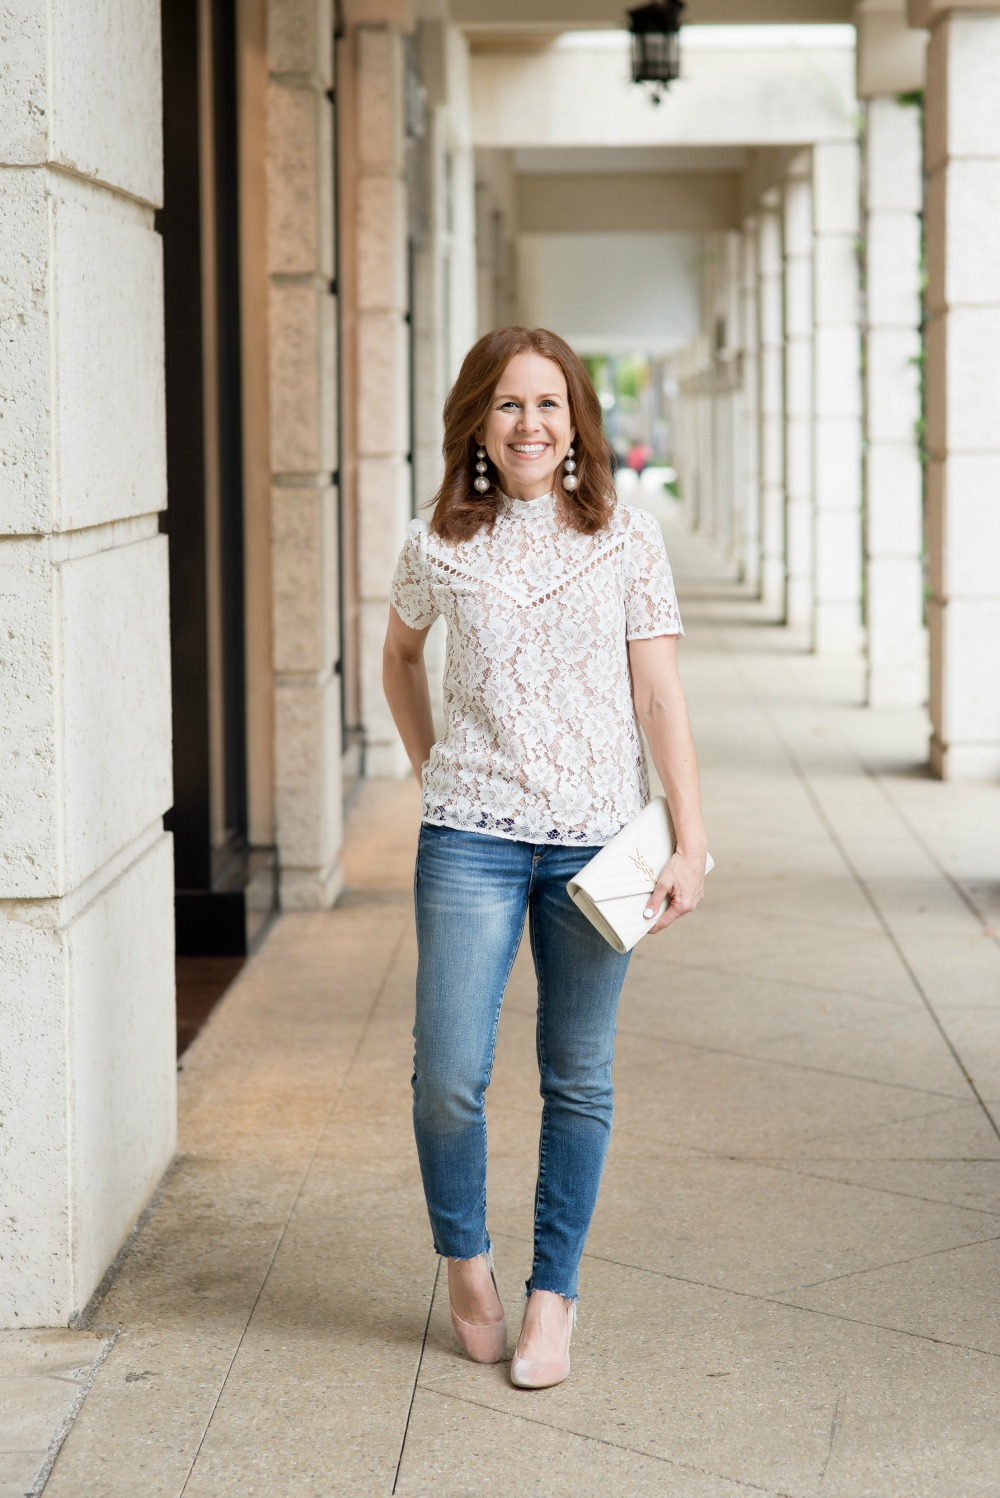 Classic outfit: lace blouse, blue denim and blush heels // the modern savvy